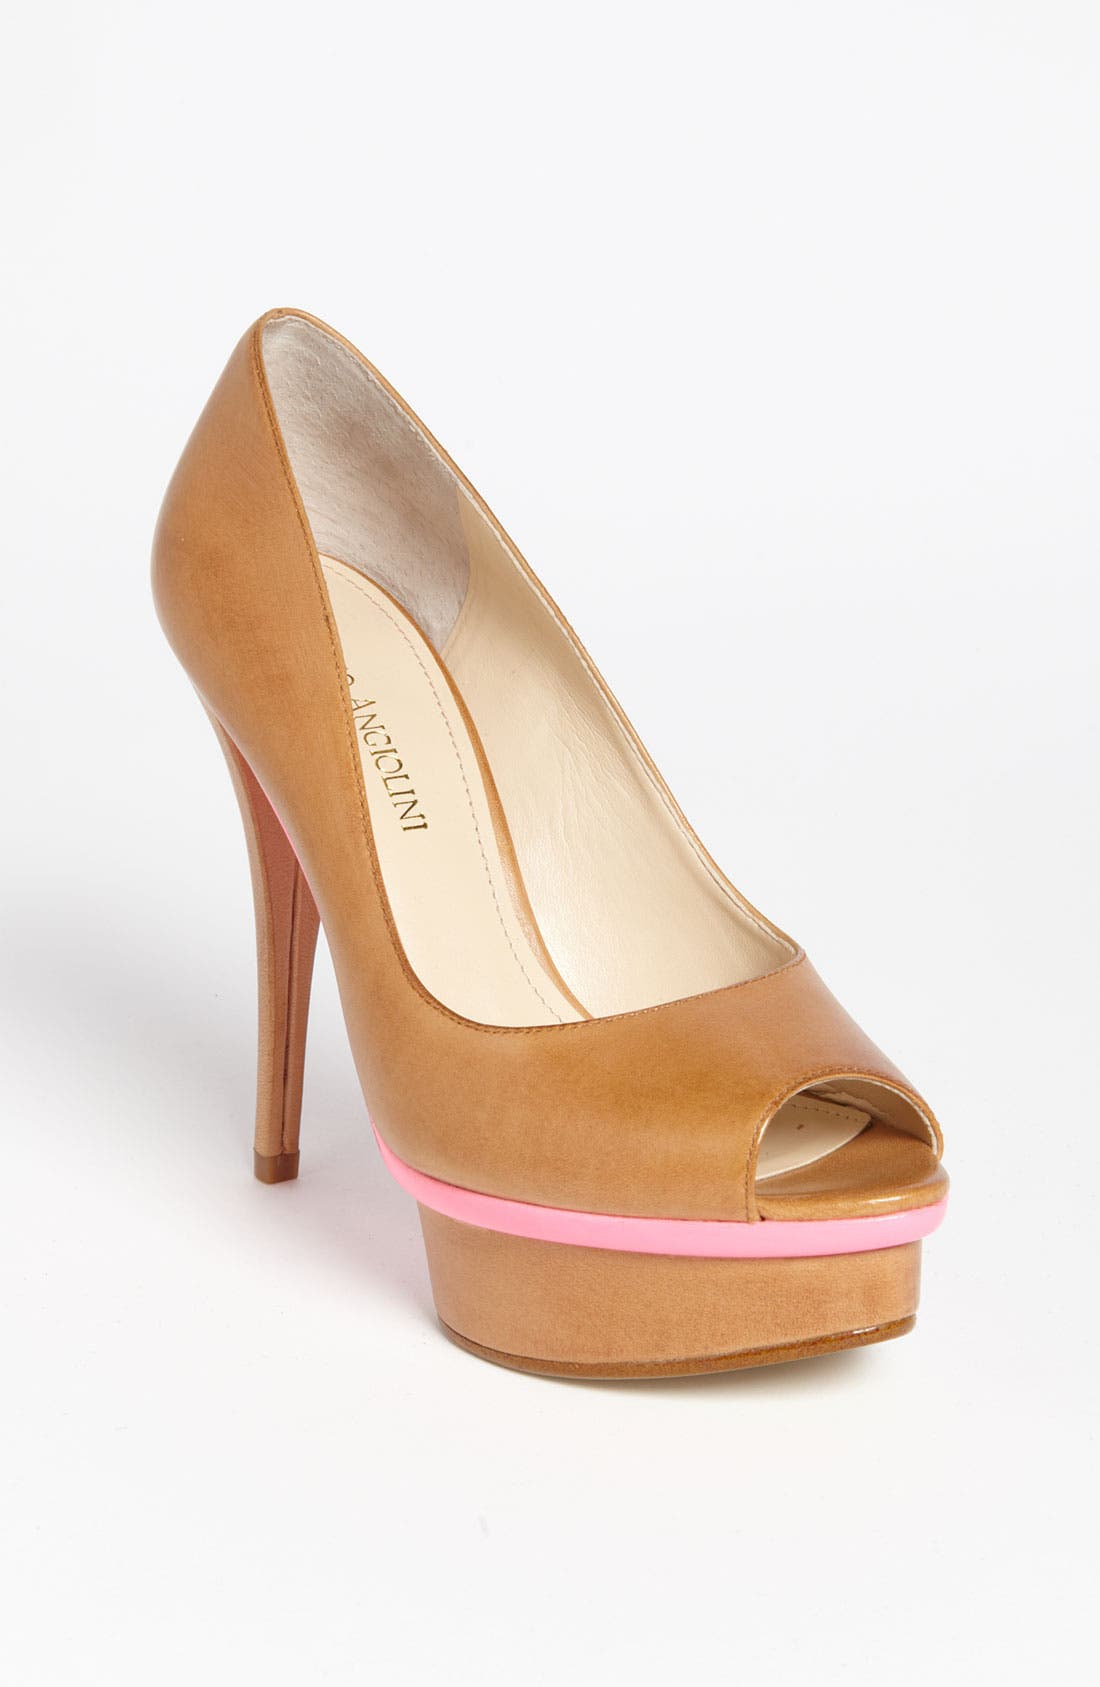 Alternate Image 1 Selected - Enzo Angiolini 'Love U Too' Pump